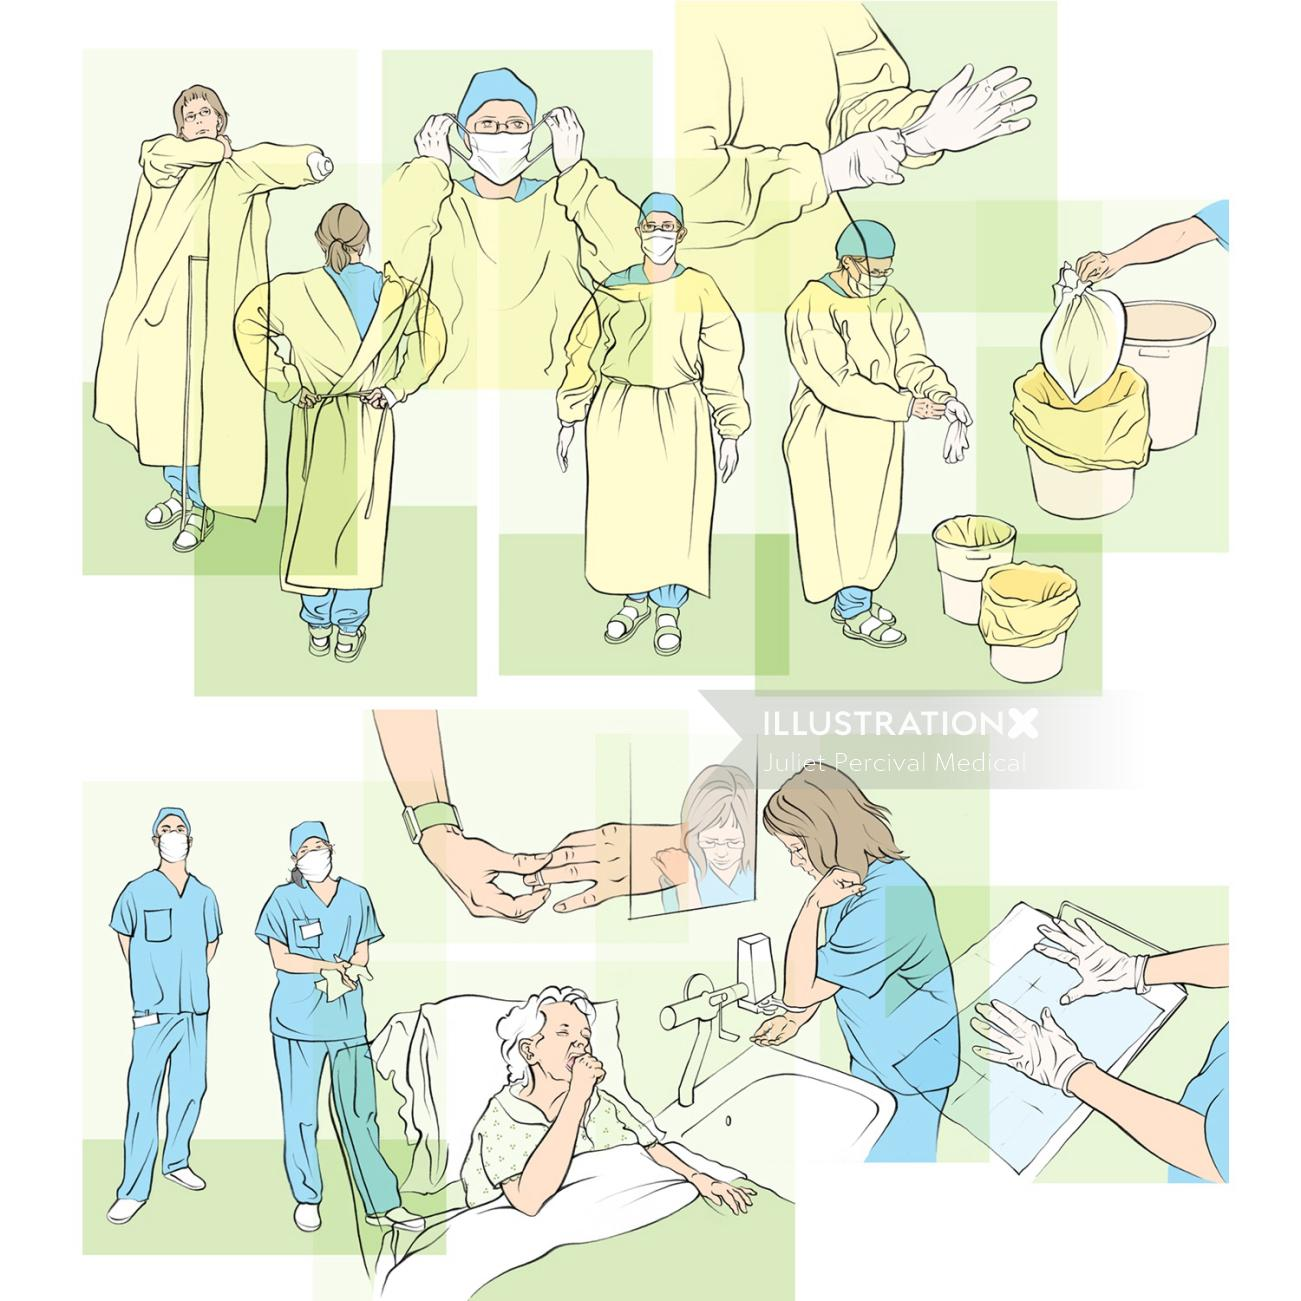 hospital hygiene, nurse, doctor, washing hands, plastic overall, waste disposal